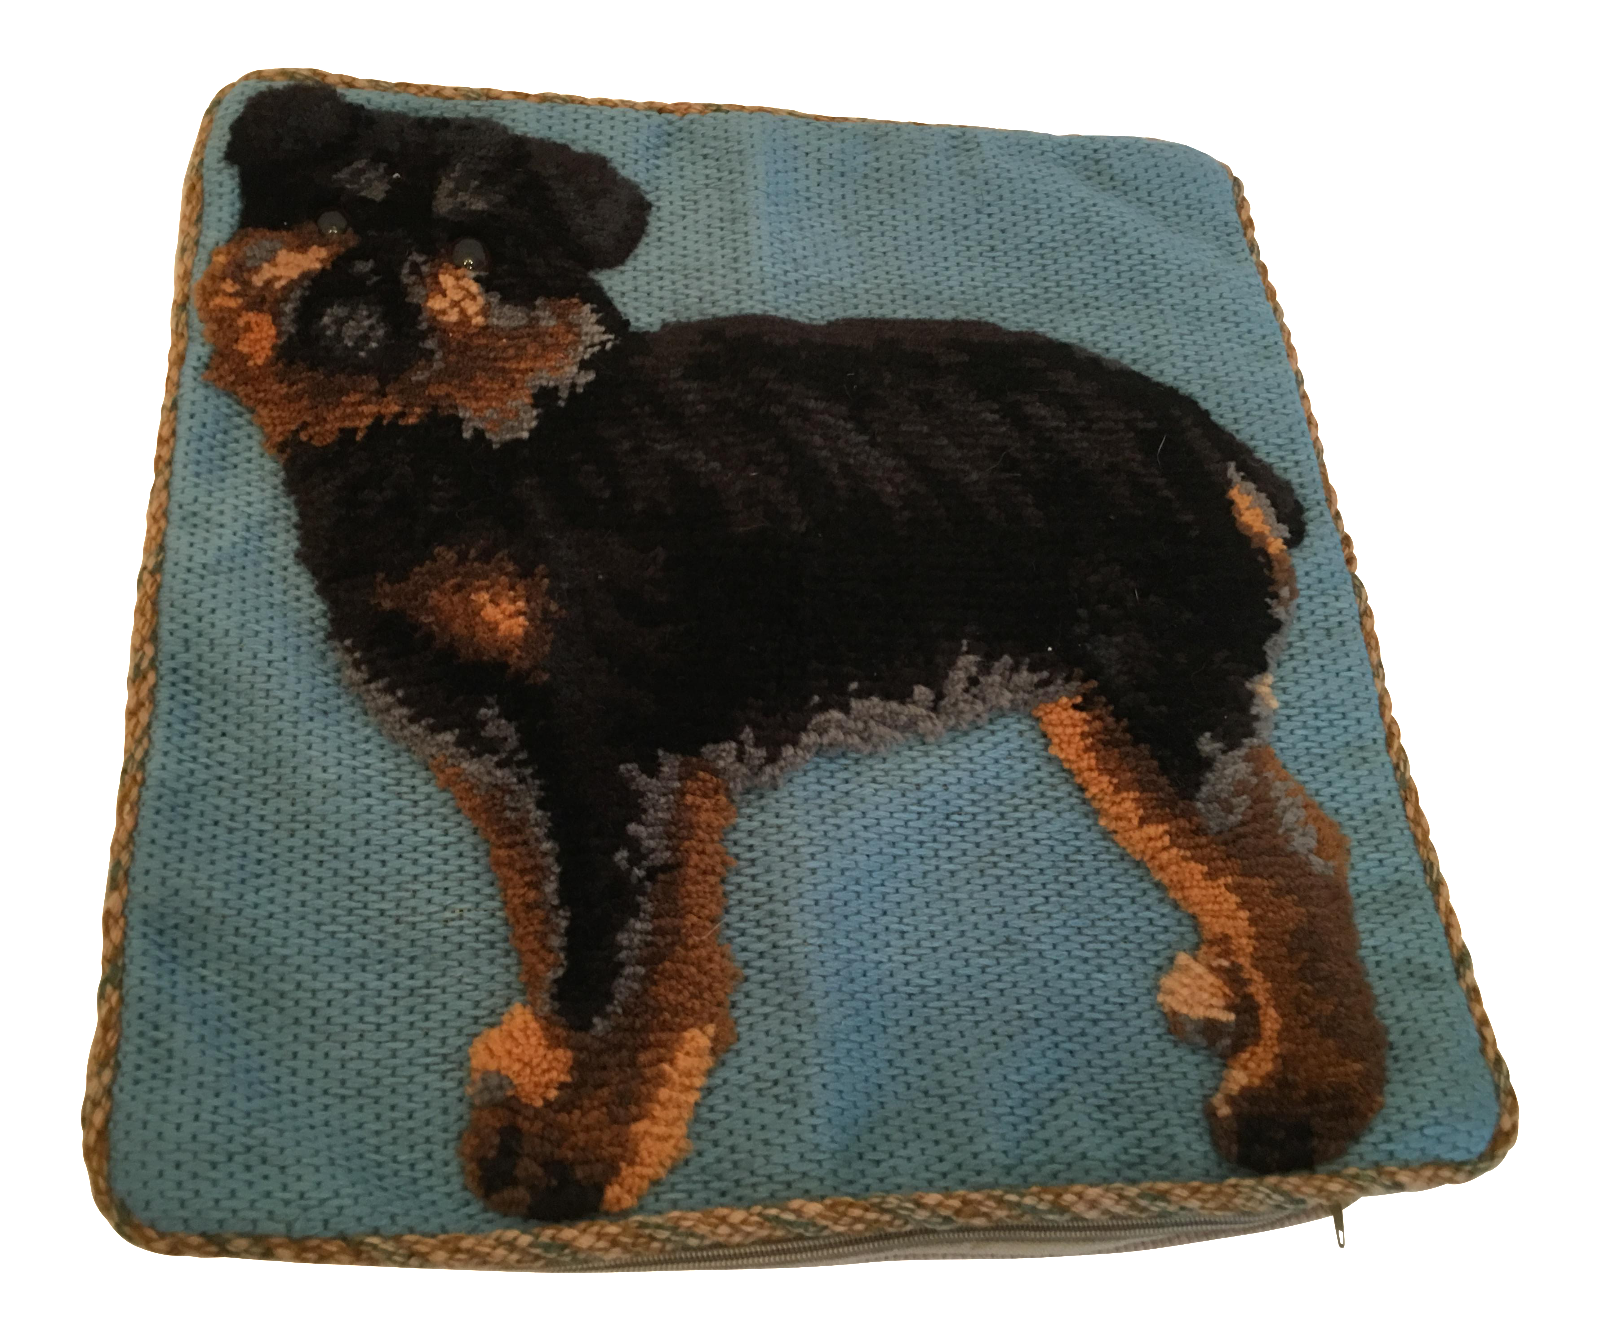 Stuffed Animal Dog Pillow : Yorkshire Terrier Plush Dog Pillow Chairish